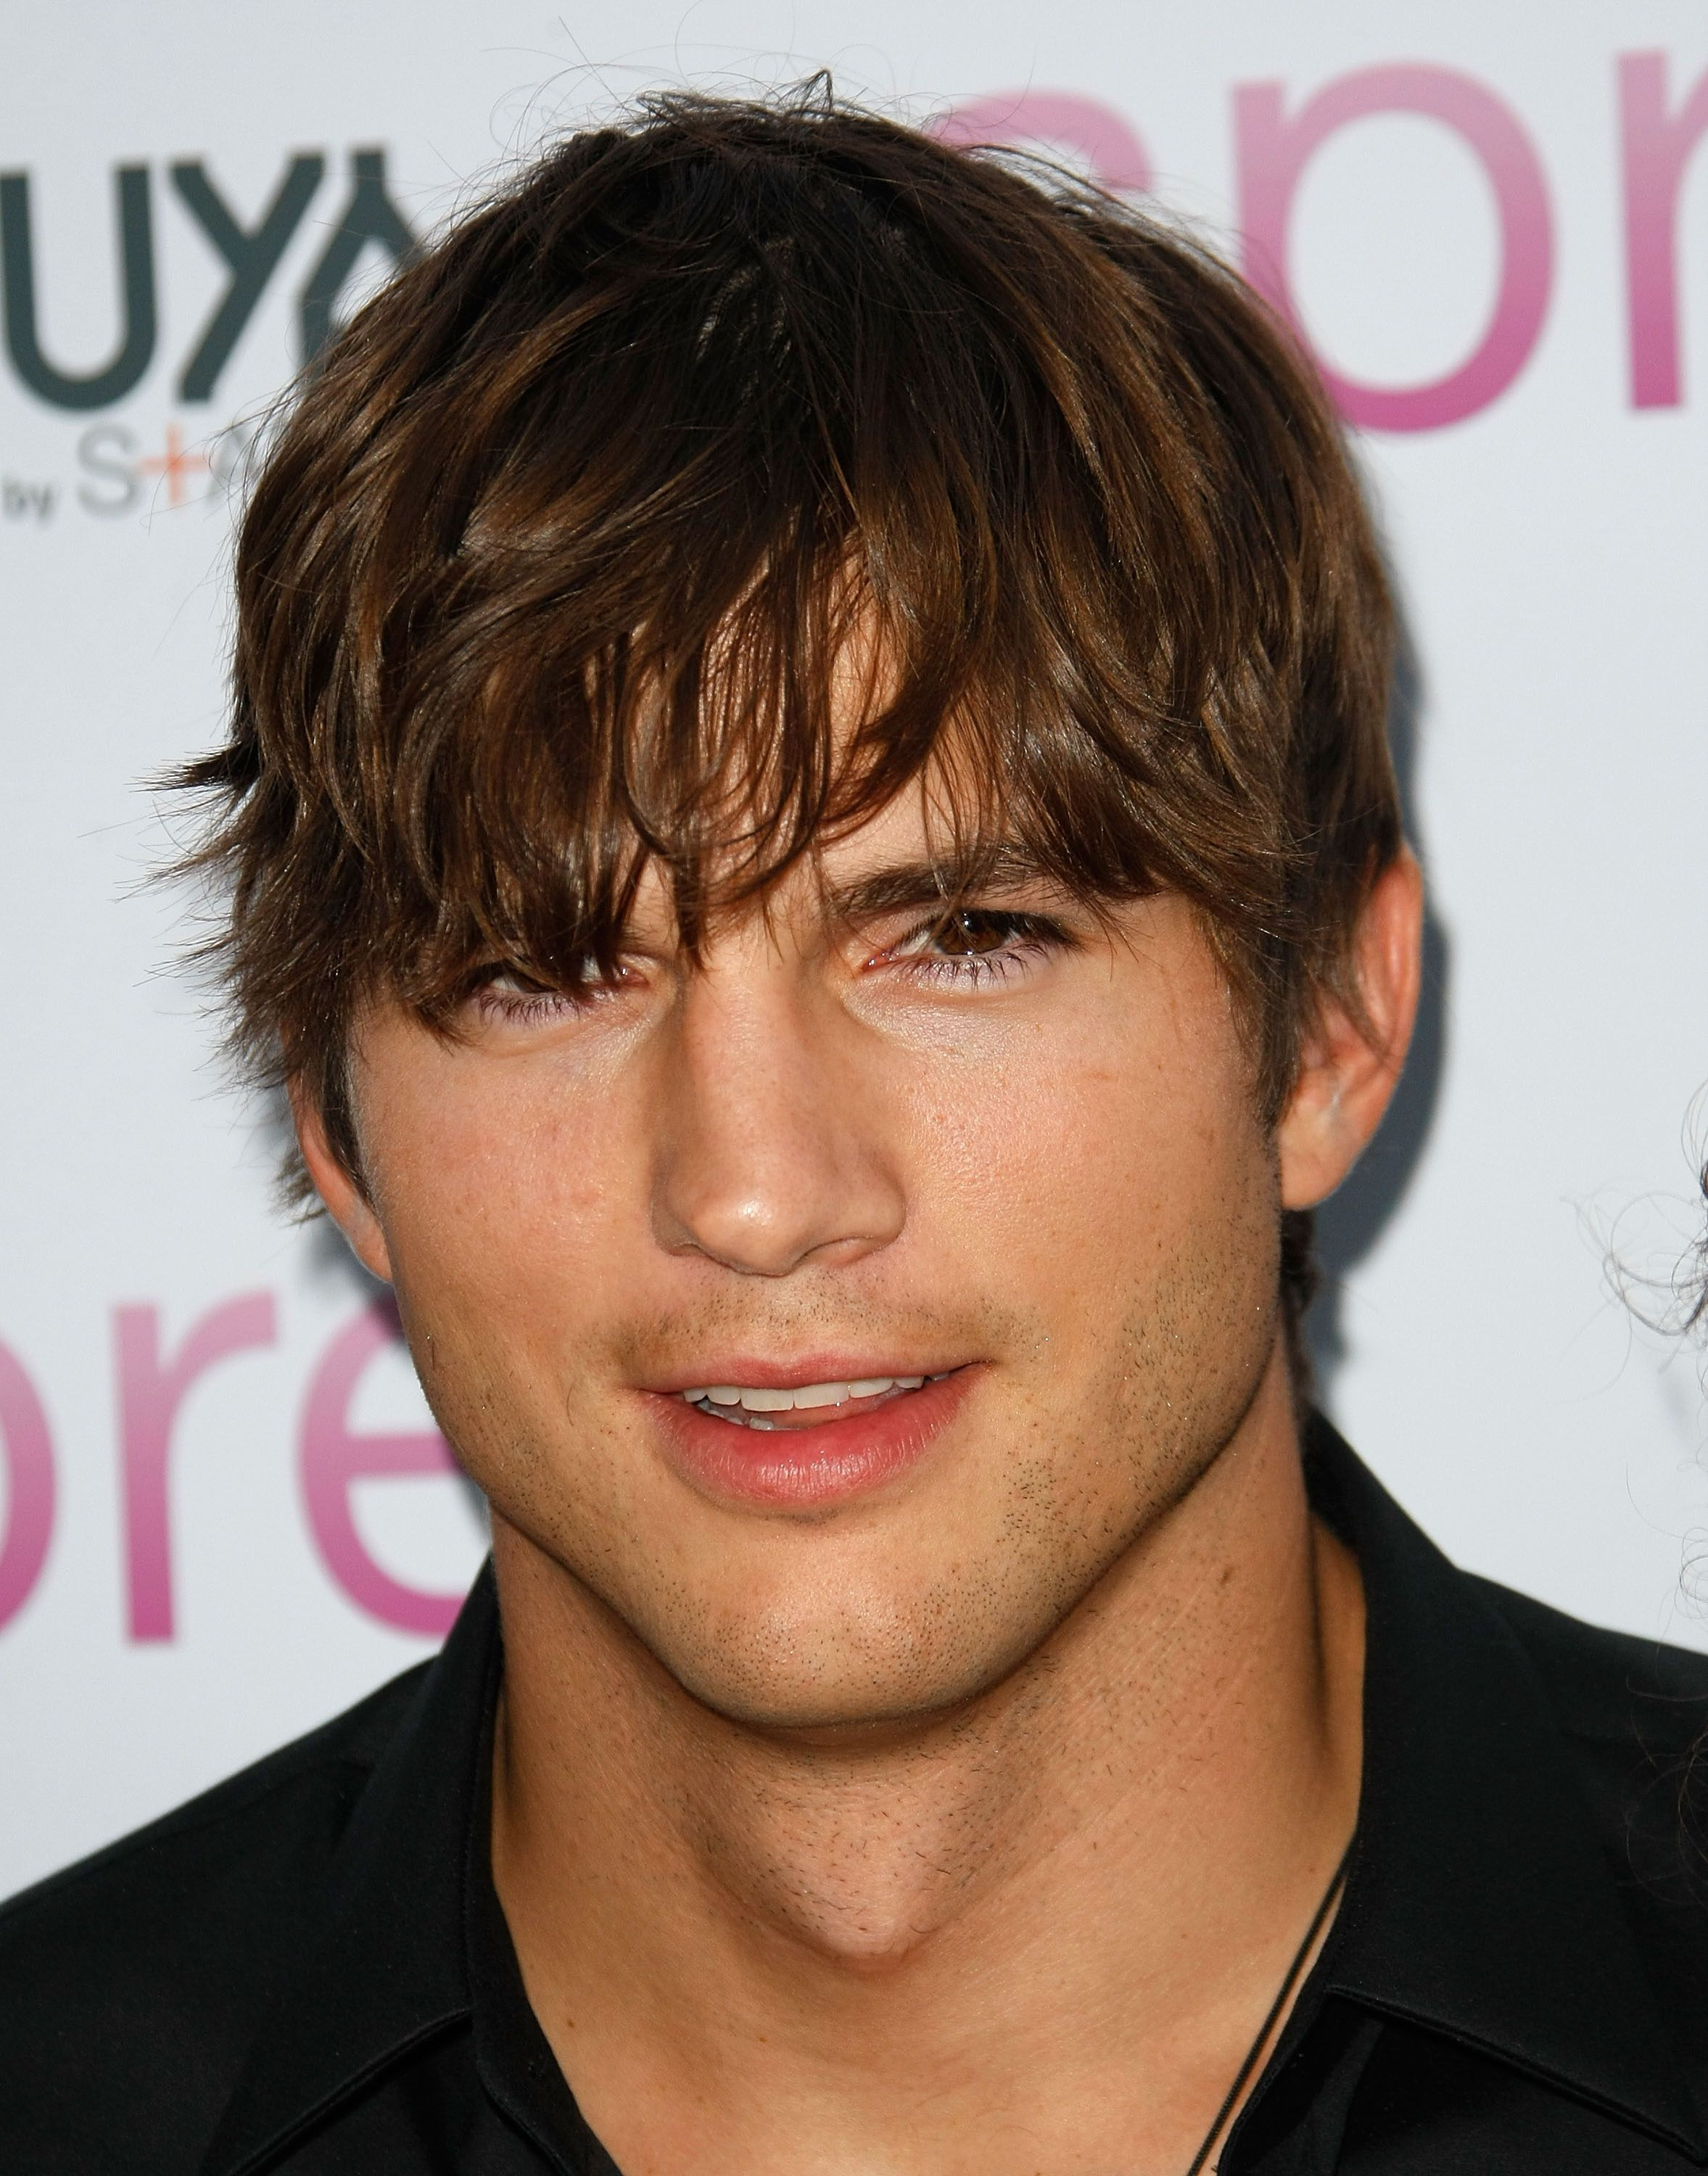 Surfer Hairstyles For Men Gallery Of Shaggy Hairstyles For Men Shaggy Hairstyles So And